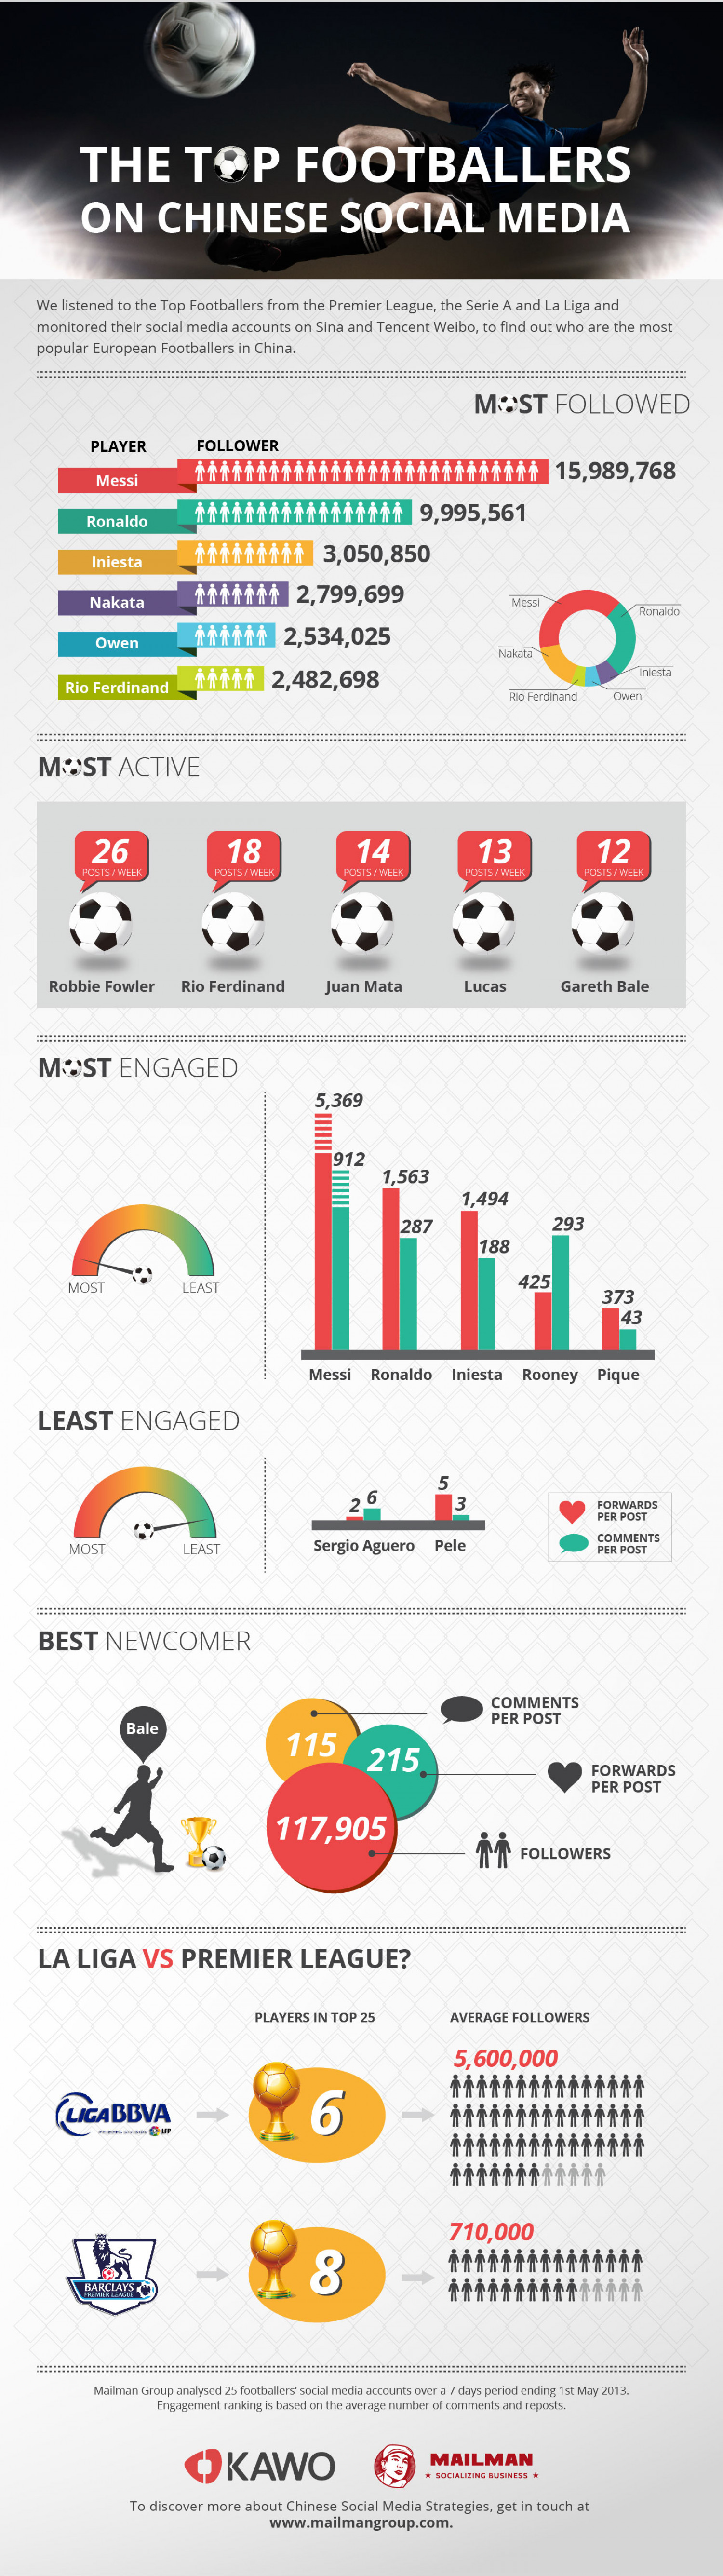 Top Footballers in Chinese Social Media Infographic